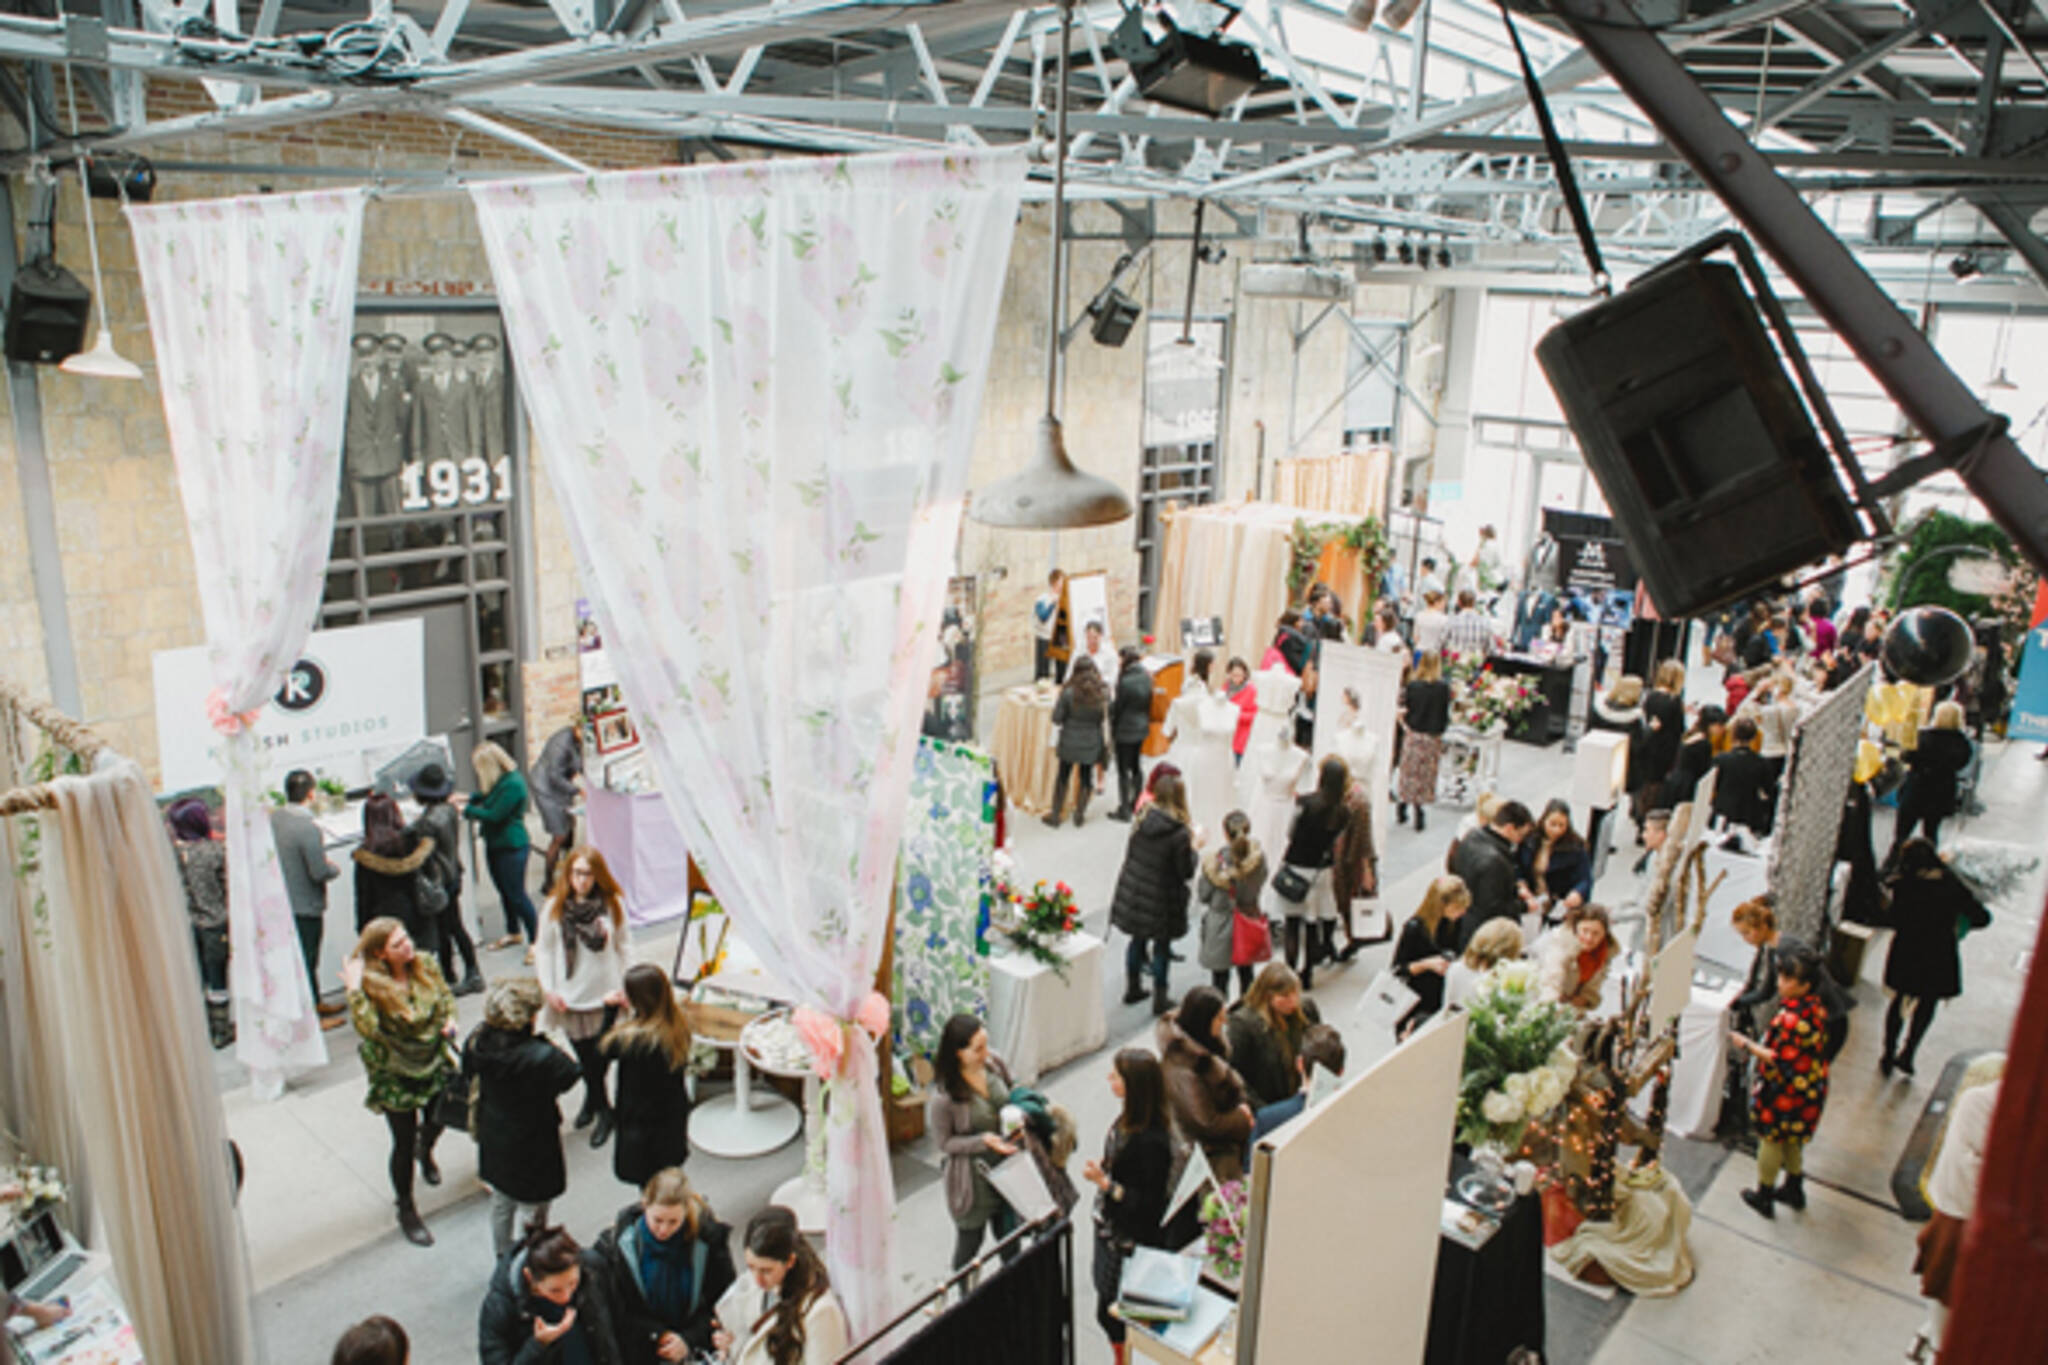 The Top 10 Wedding Bridal Shows In Toronto For 2016